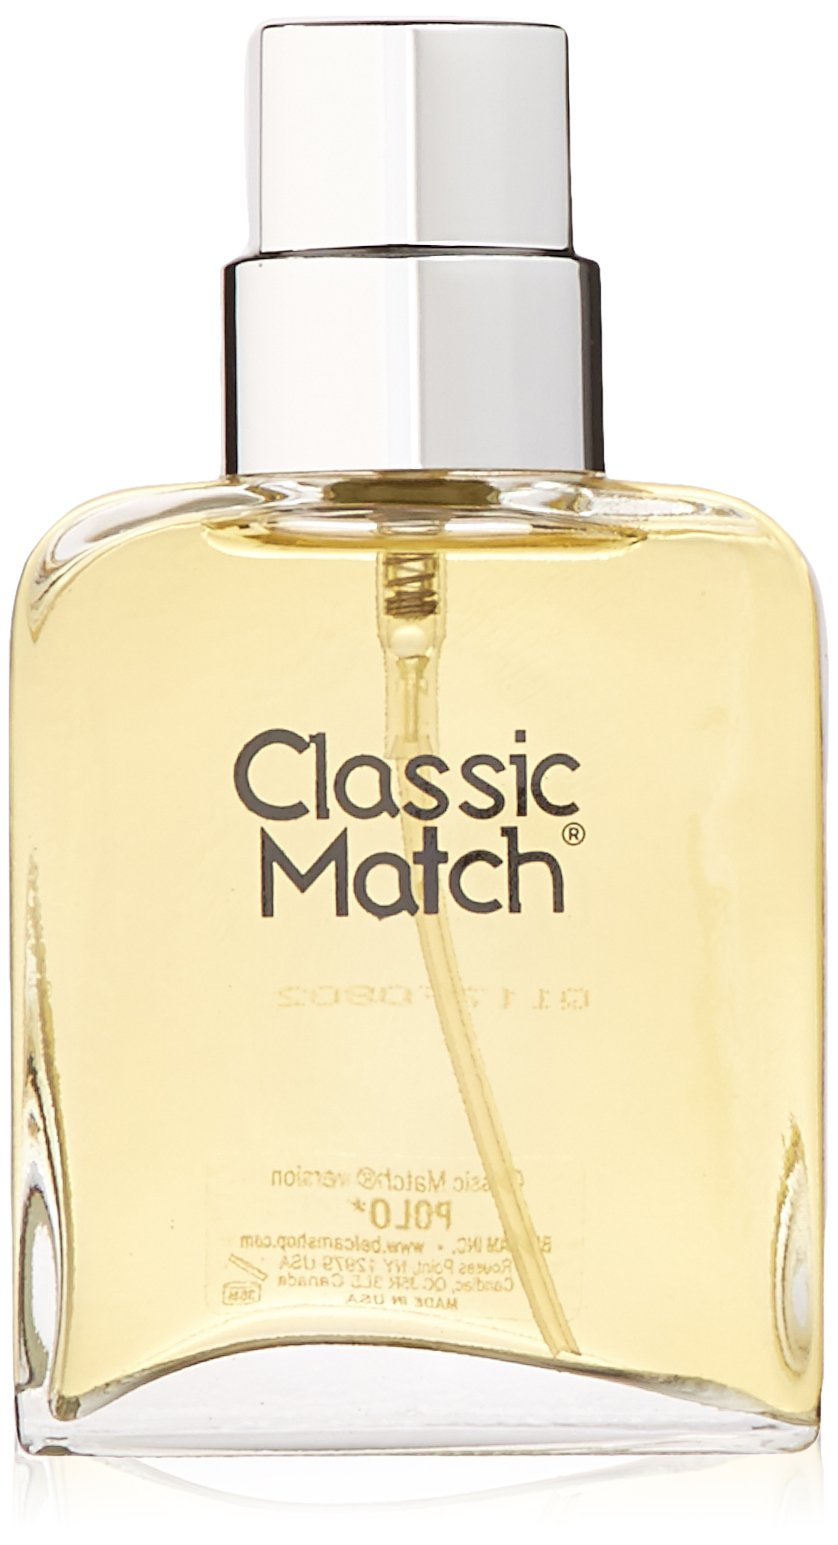 Classic Match, version of Polo Eau de Toilette Spray for Men